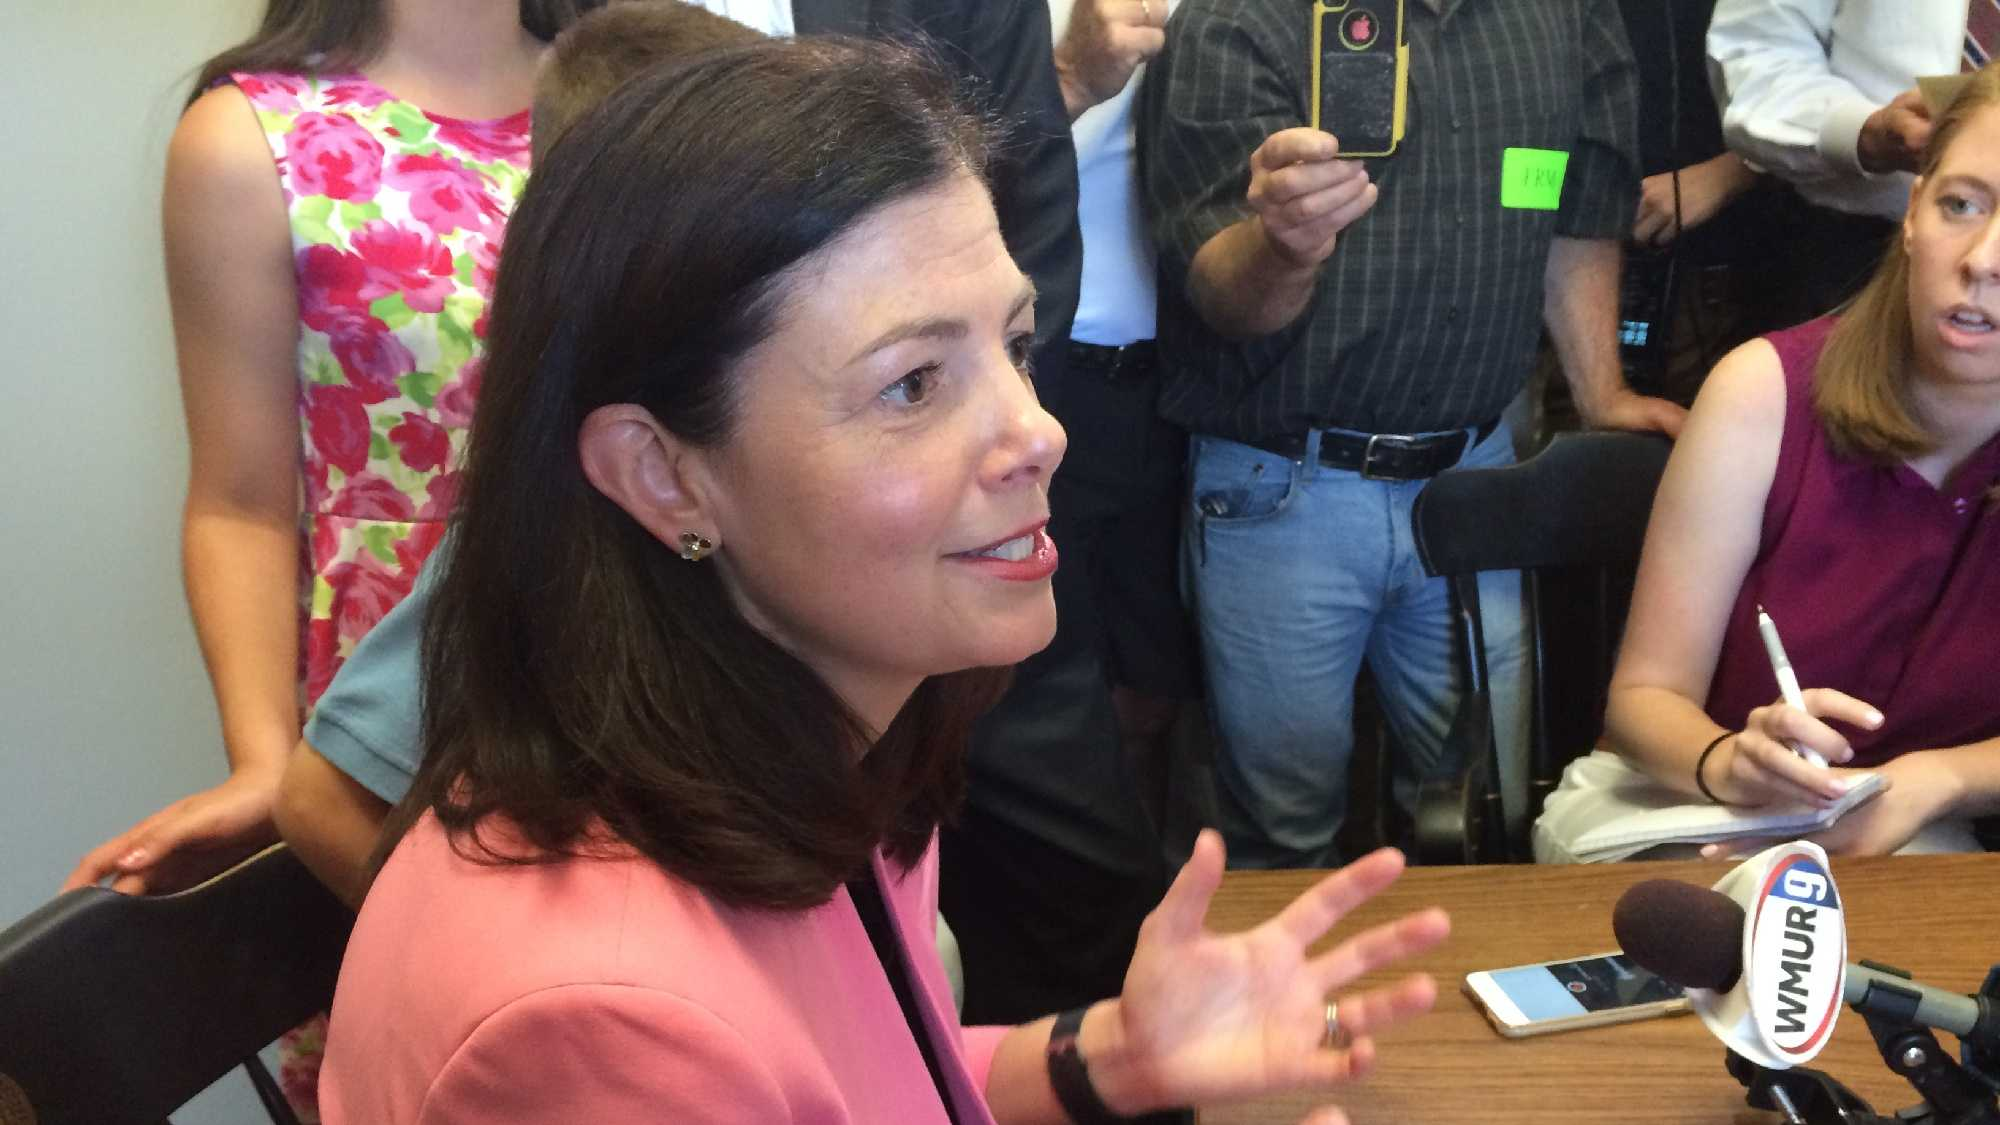 Sen. Kelly Ayotte speaks with reporters after filing her candidacy for re-election Wednesday at the State House.